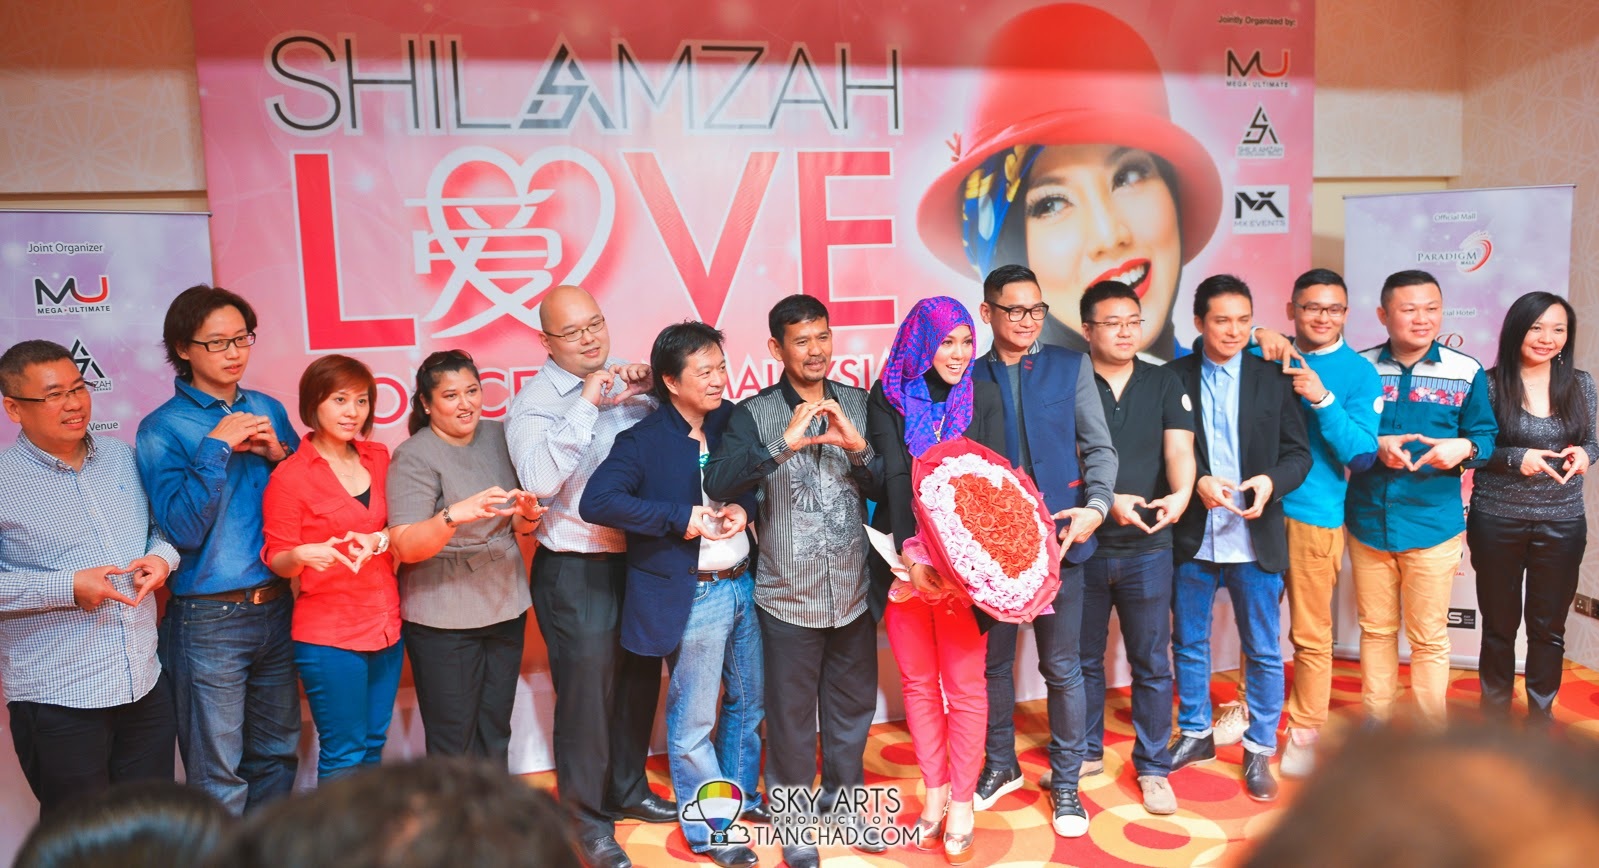 Shila Amzah 茜拉 together with sponsors and organizer for the upcoming concert!